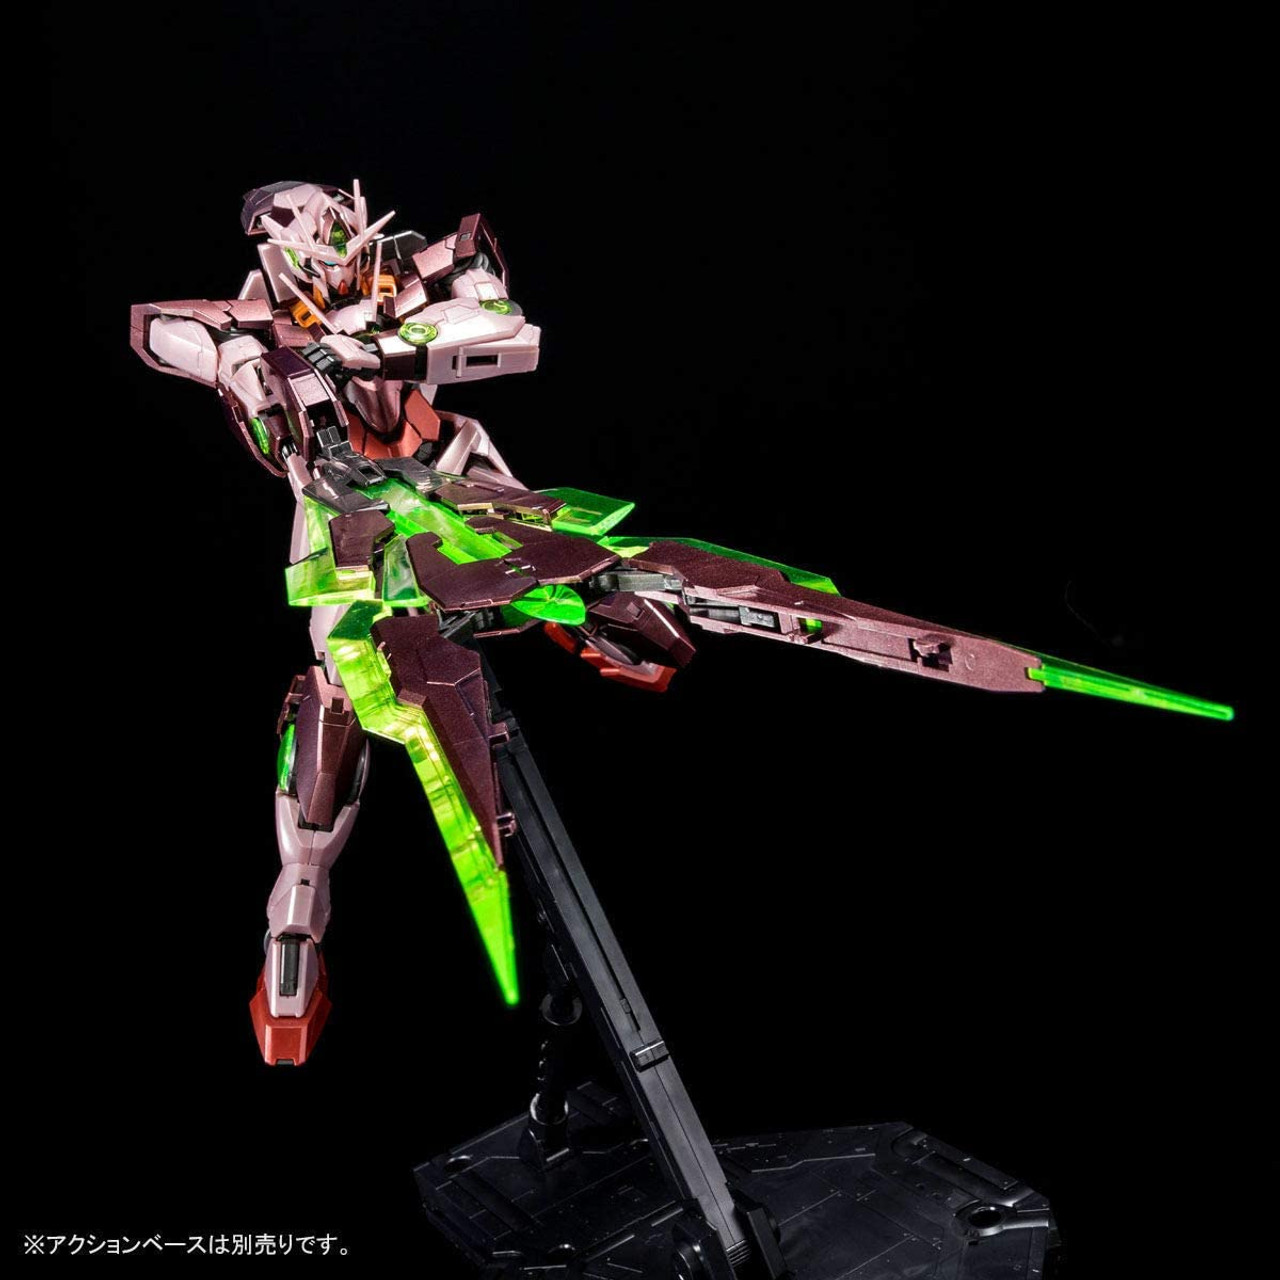 BANDAI MG 00 Qan [T] (Trans-Am Mode) [Special Coating] 1/100 * Action Base is not included.